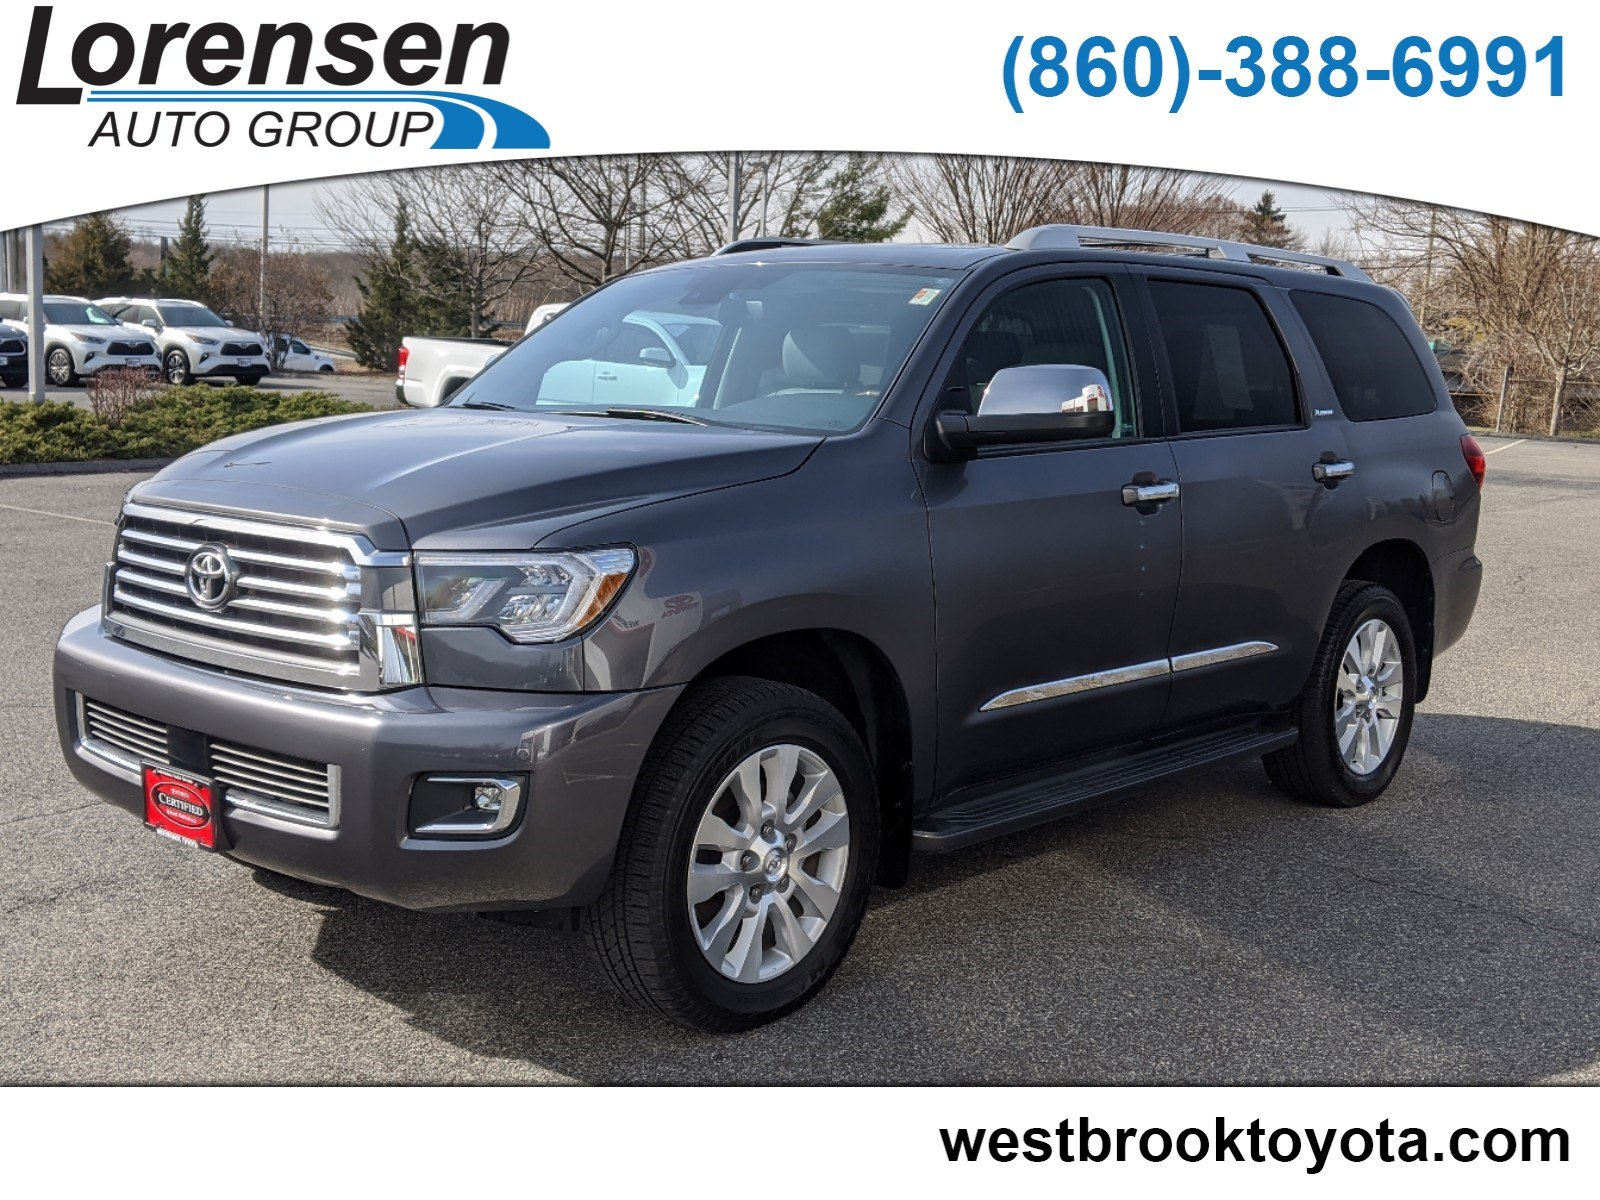 Certified Pre-Owned 2020 Toyota Sequoia Platinum